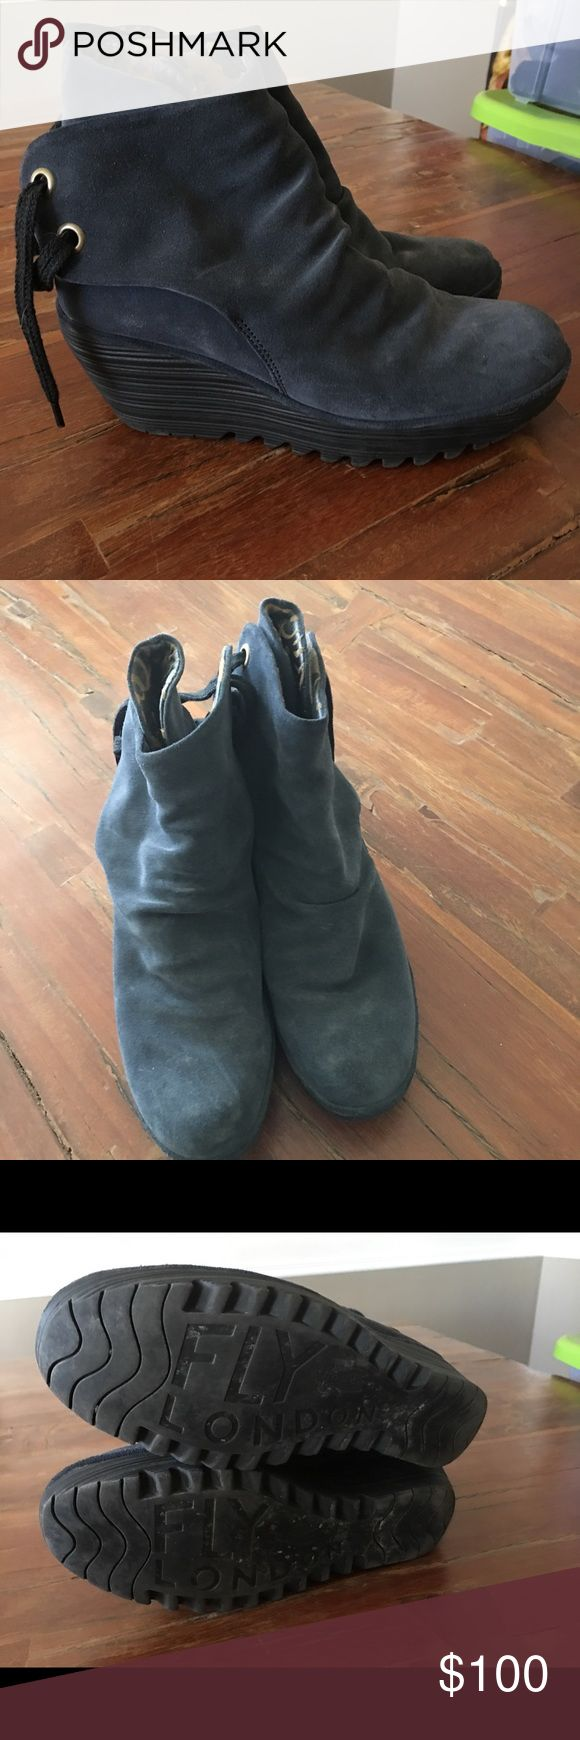 Fly London Yama size 10 Navy blue suede Fly London Yama boot.  Size 10.  Worn less than 5 Times.  Great boots! Fly London Shoes Ankle Boots & Booties